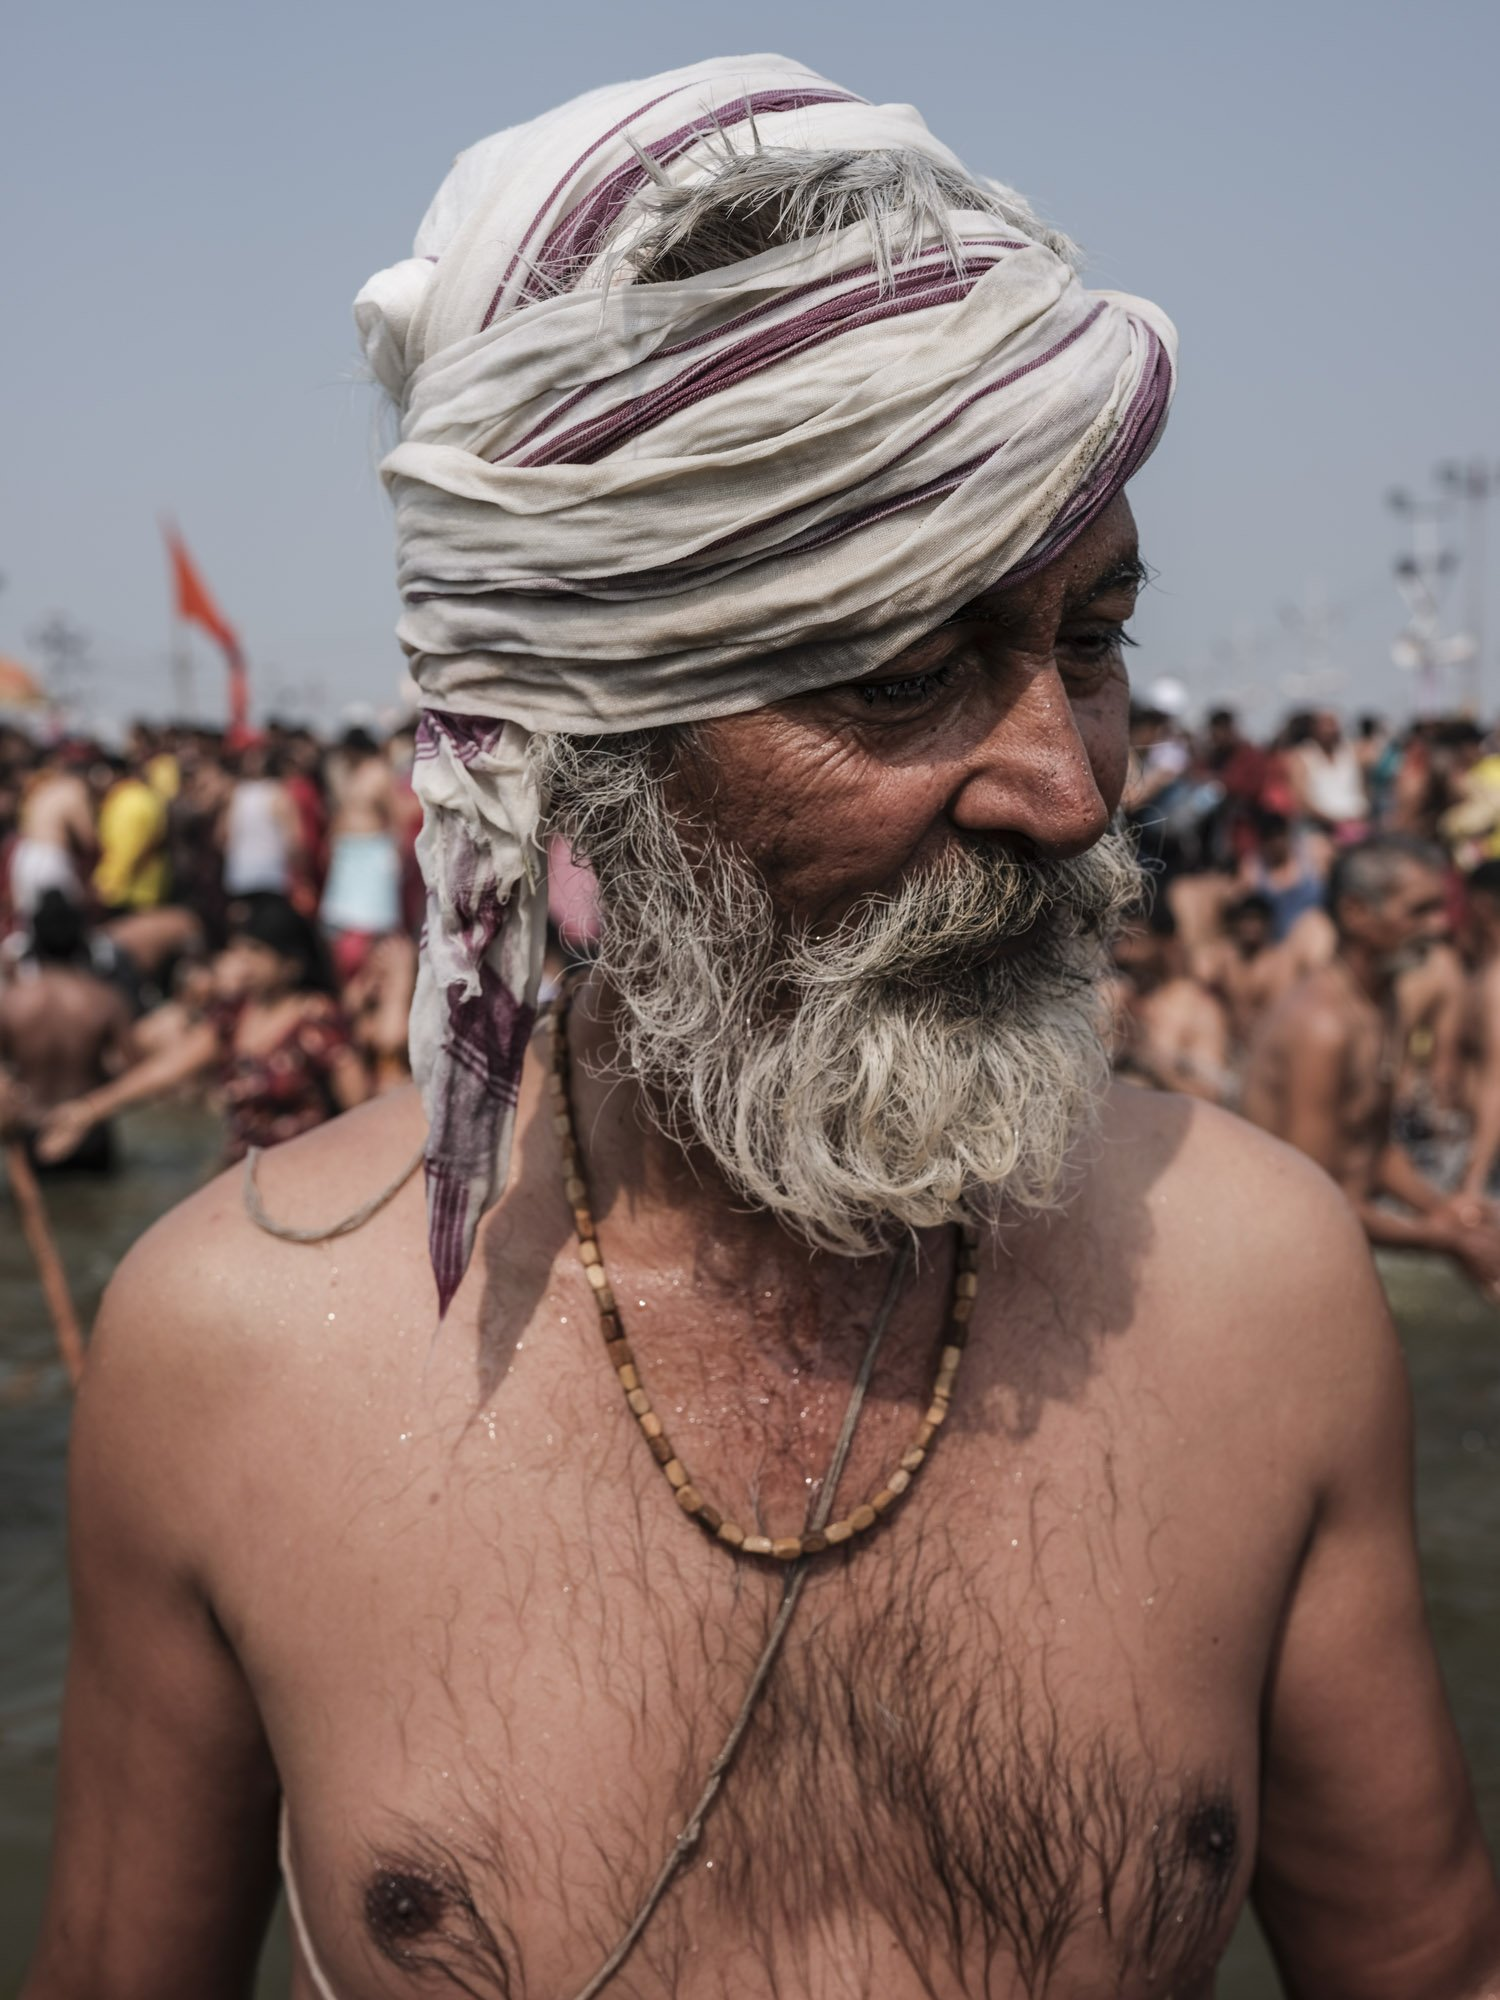 pilgrims Kumbh mela 2019 India Allahabad Prayagraj Ardh hindu religious Festival event rivers photographer jose jeuland photography man people